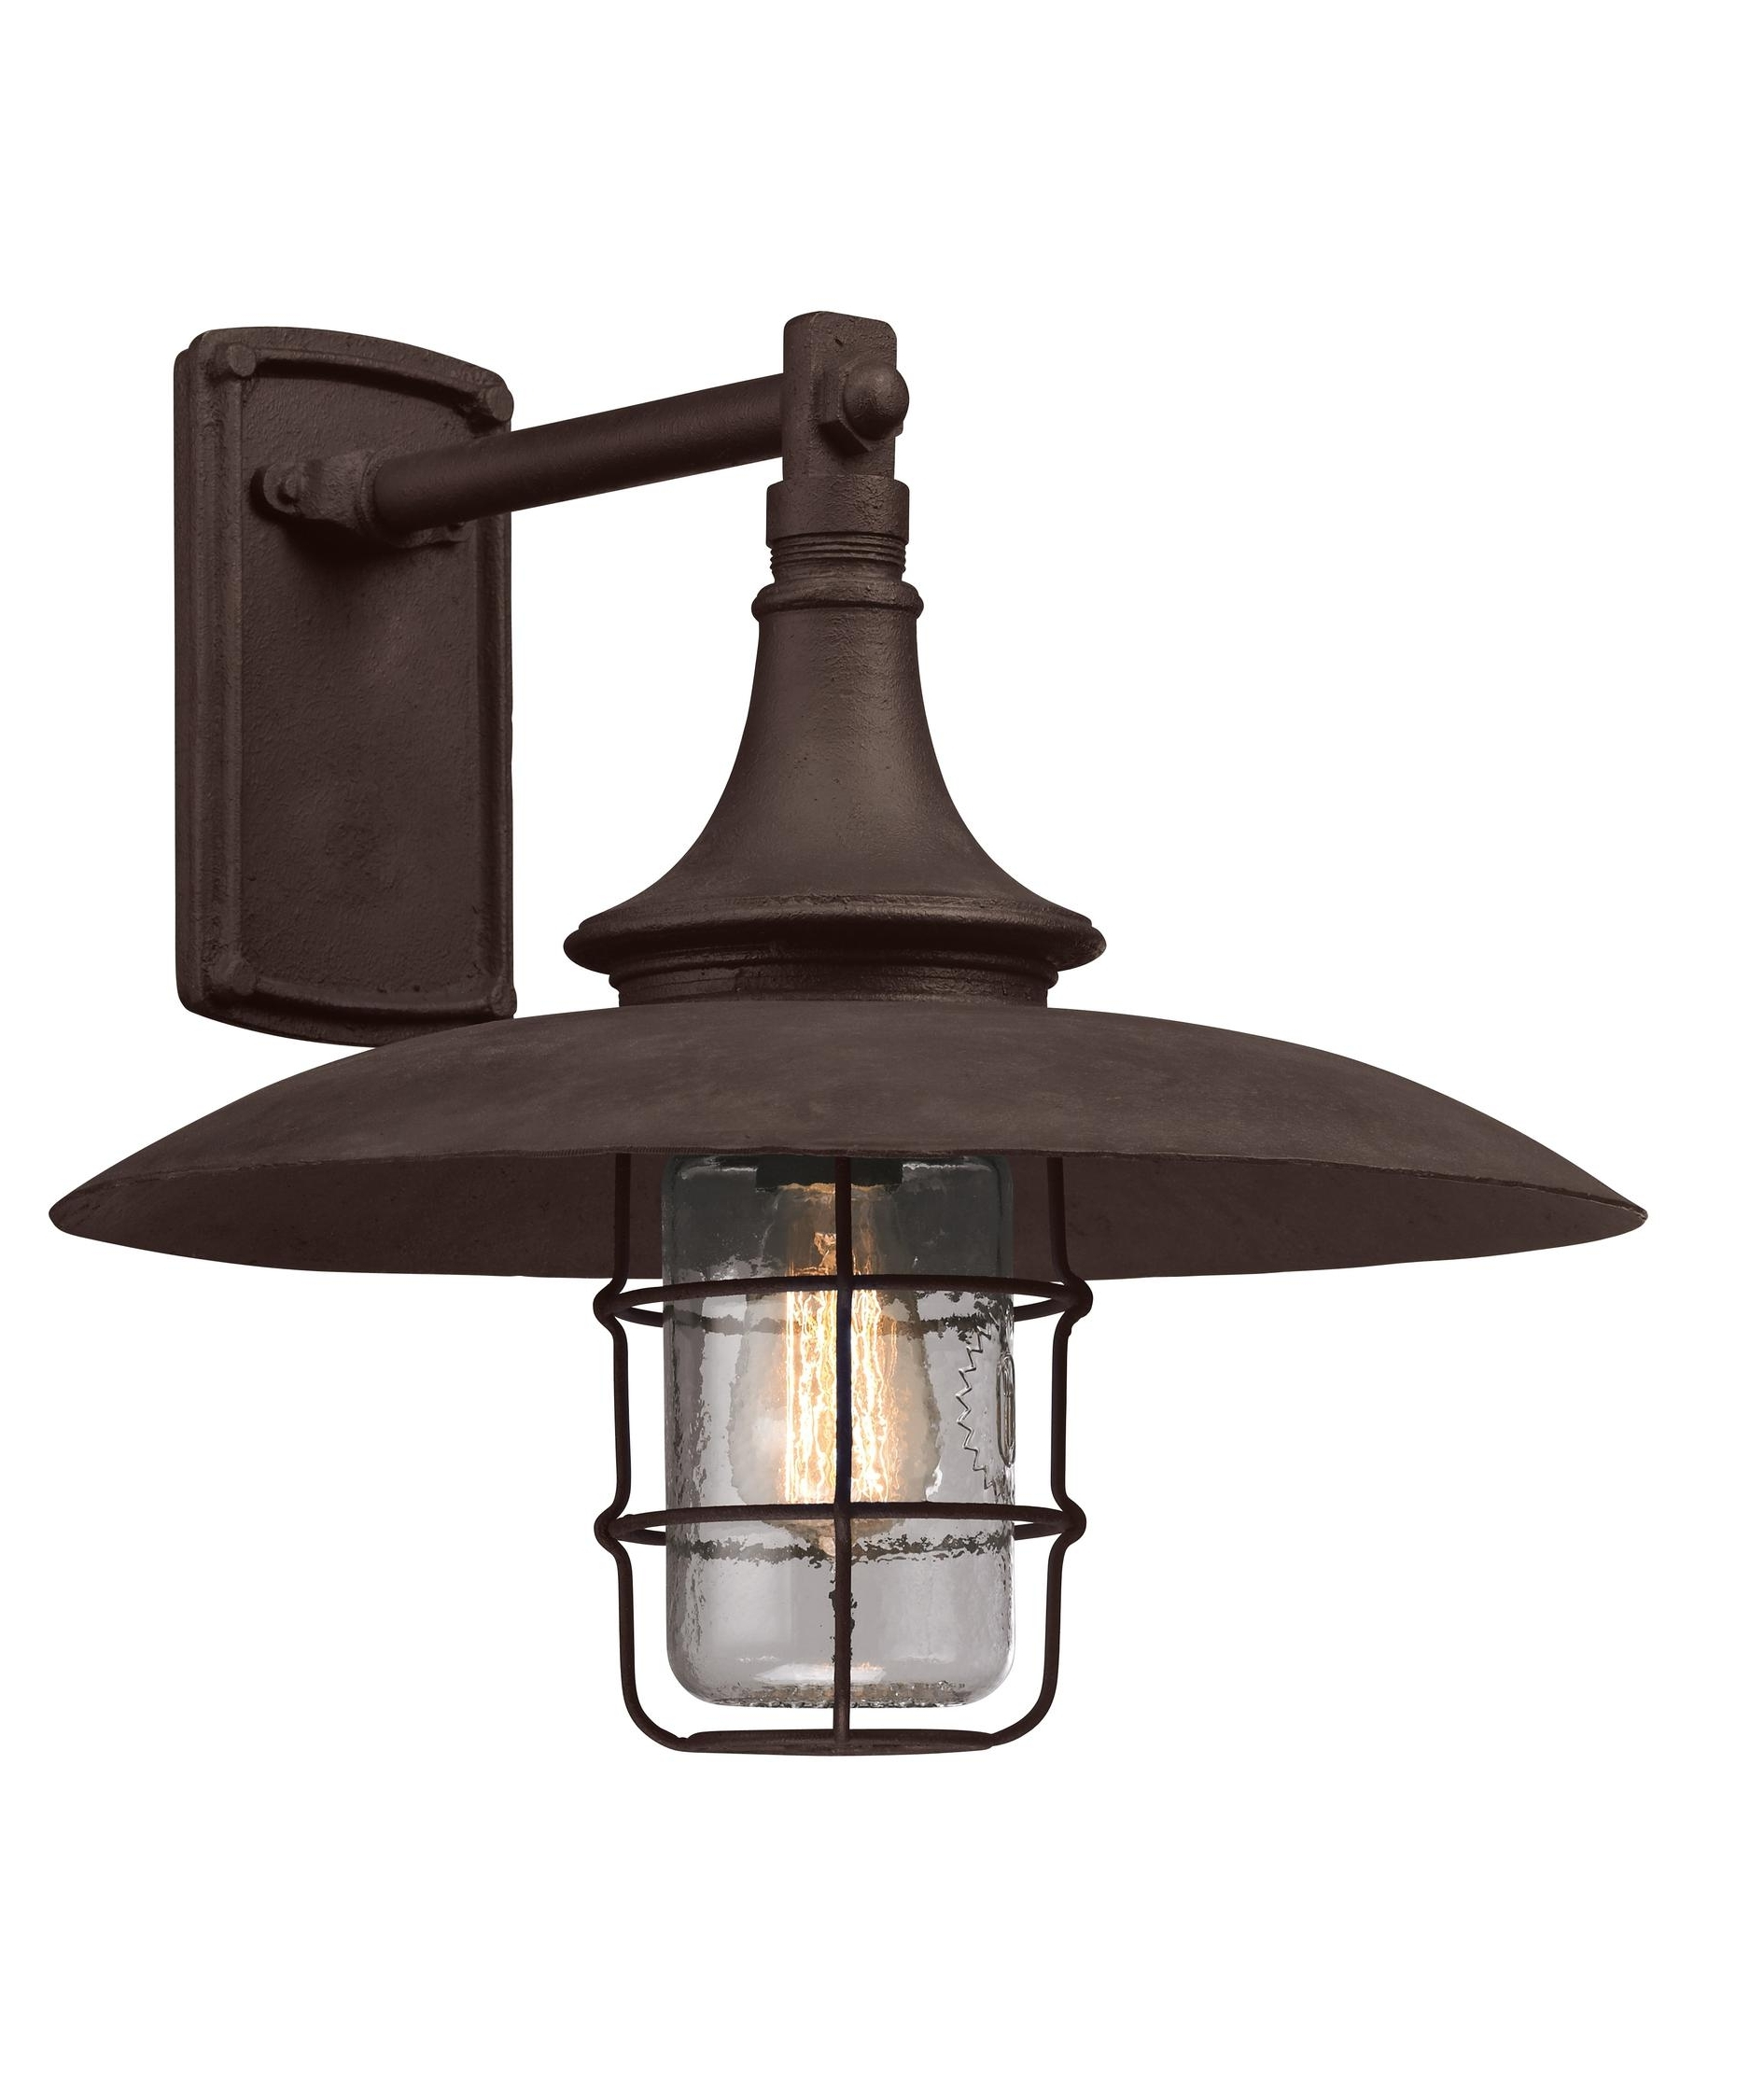 Most Popular Retro Outdoor Wall Lighting Throughout Troy Lighting B3222 Allegany 16 Inch Wide 1 Light Outdoor Wall Light (View 11 of 20)